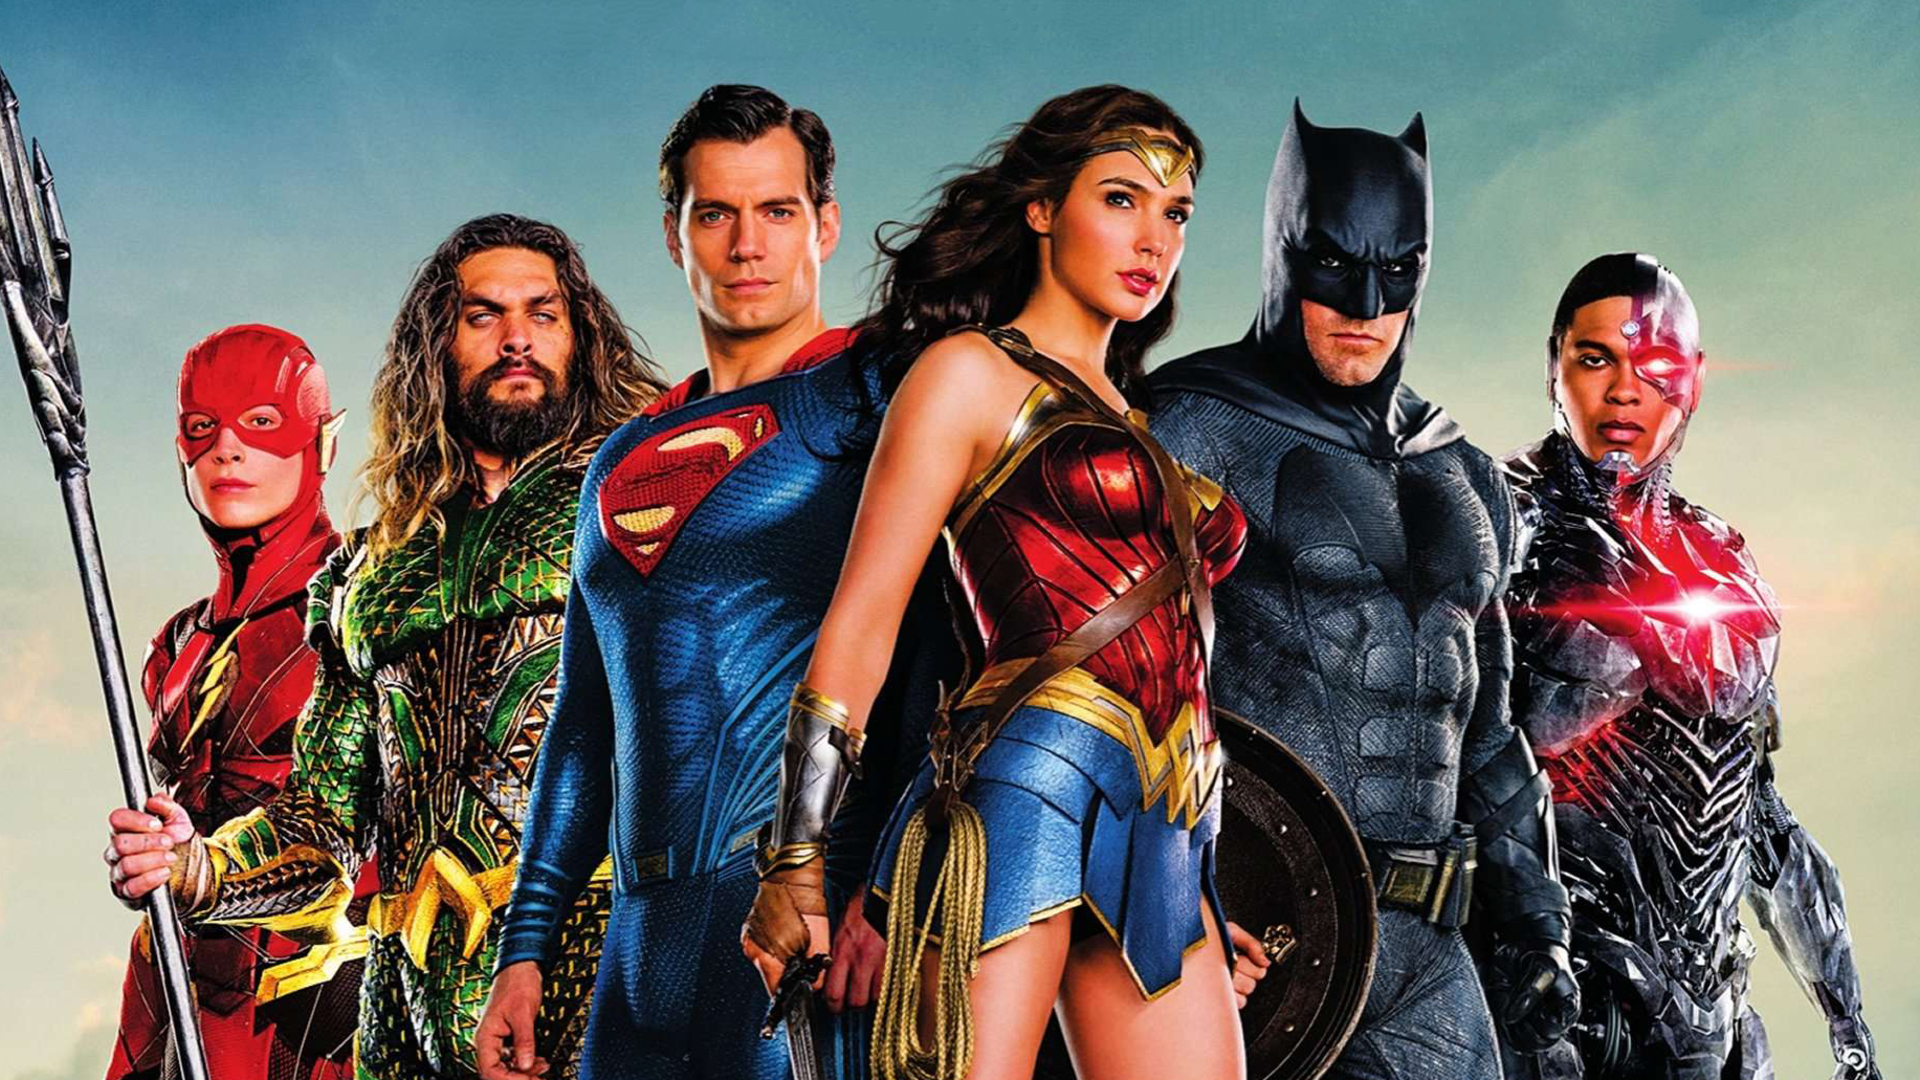 1920x1080 Justice League Movie Poster Laptop Full Hd 1080p Hd 4k